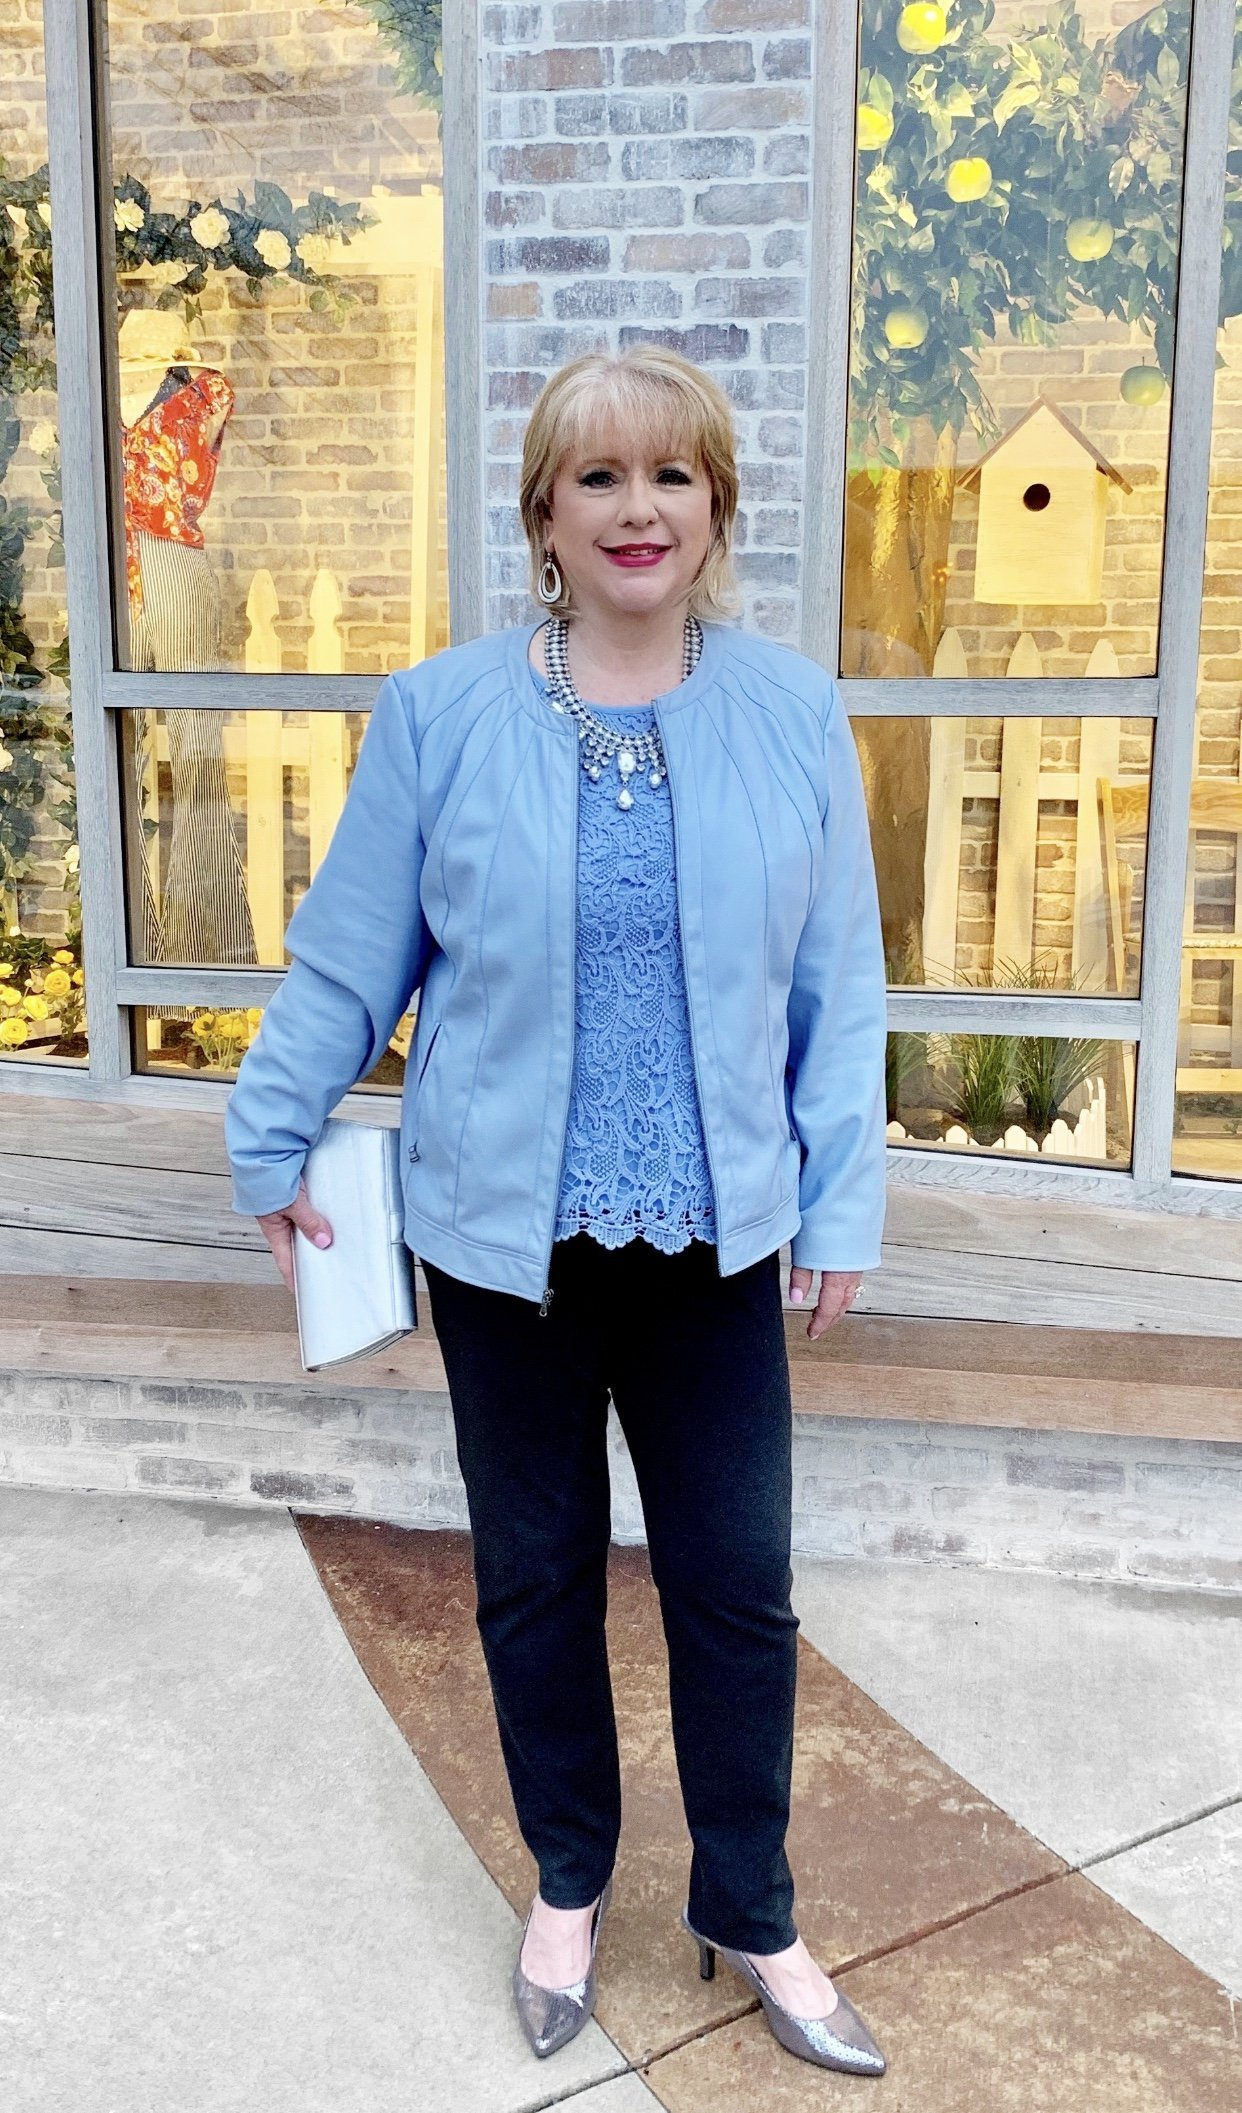 Style Story Interview Classy Colorful Confidence @StyleShennanigans Shannon Holmes Fashion Over 50 60 Confident Classic Romantic Sophisticated Light Blue Lace Outfit Story Behind The Cloth